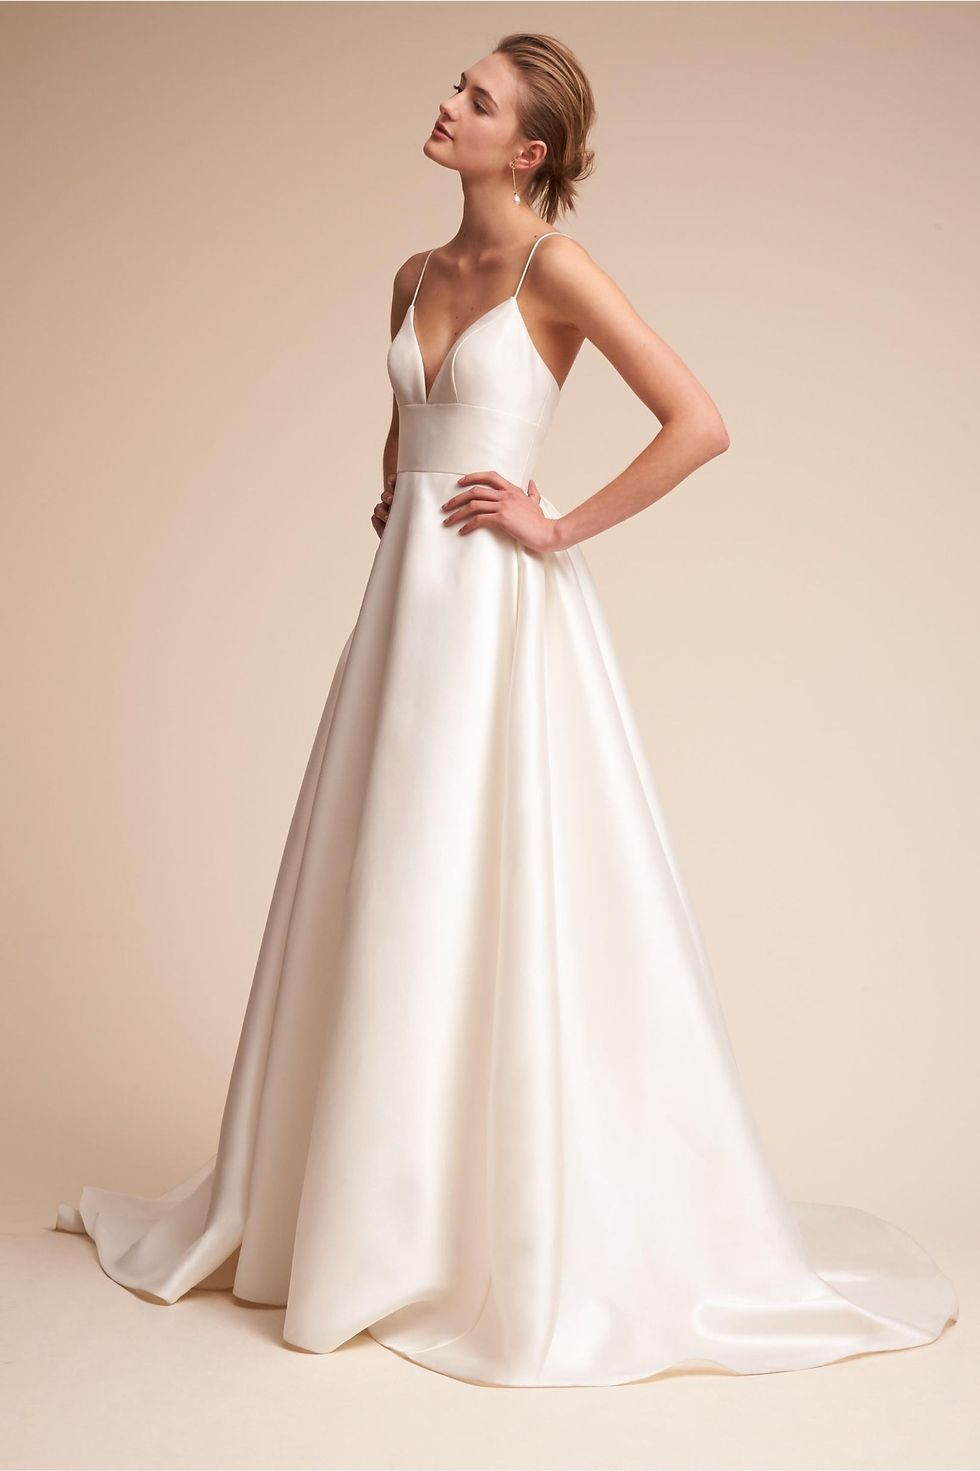 spectacular wedding dresses that you can buy now wedding